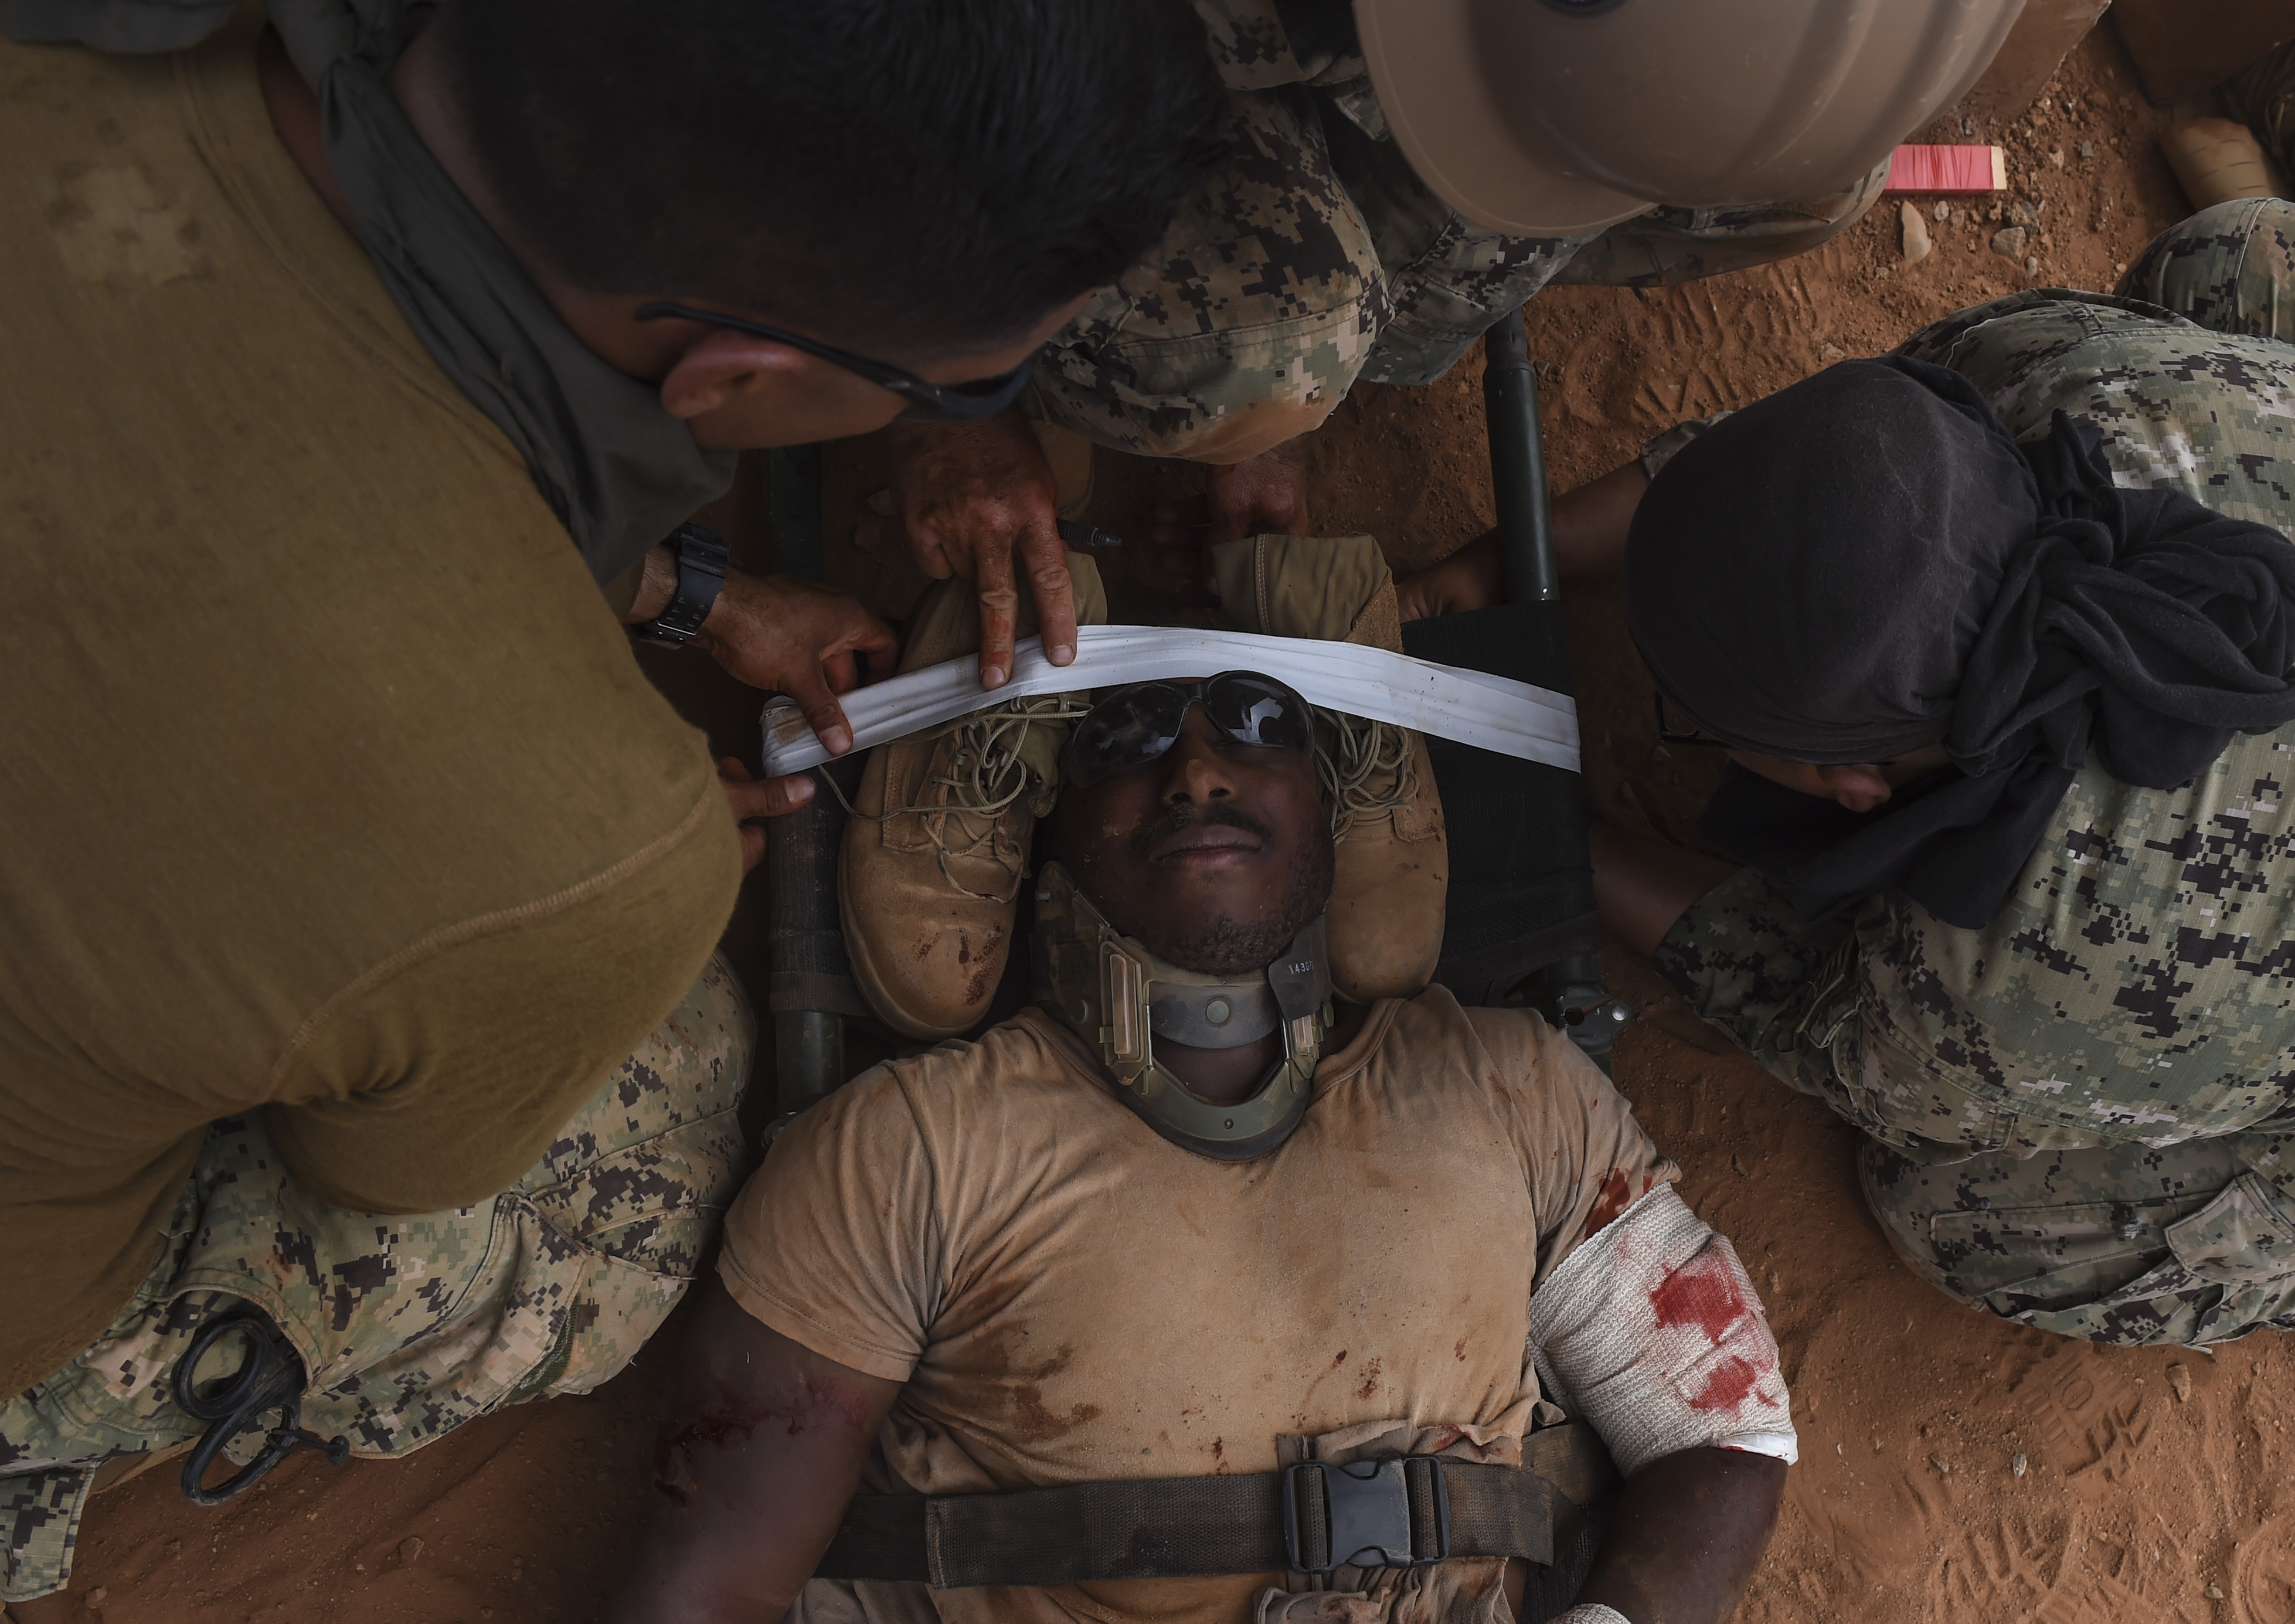 U.S. Navy Petty Officer 3rd Class Melvin Taylor from the Naval Mobile Construction Battalion One, a maneuver unit of the Combined Joint Task Force-Horn of Africa, receives care for his simulated injuries during a bilateral exercise with French forces in the Arta region, July 19, 2017. CJTF-HOA conducts exercises to maintain readiness and evaluate capability of U.S. and international forces, or to establish/maintain relationships and contribute to capacity building. (U.S. Air Force photo by Staff Sgt. Eboni Prince)